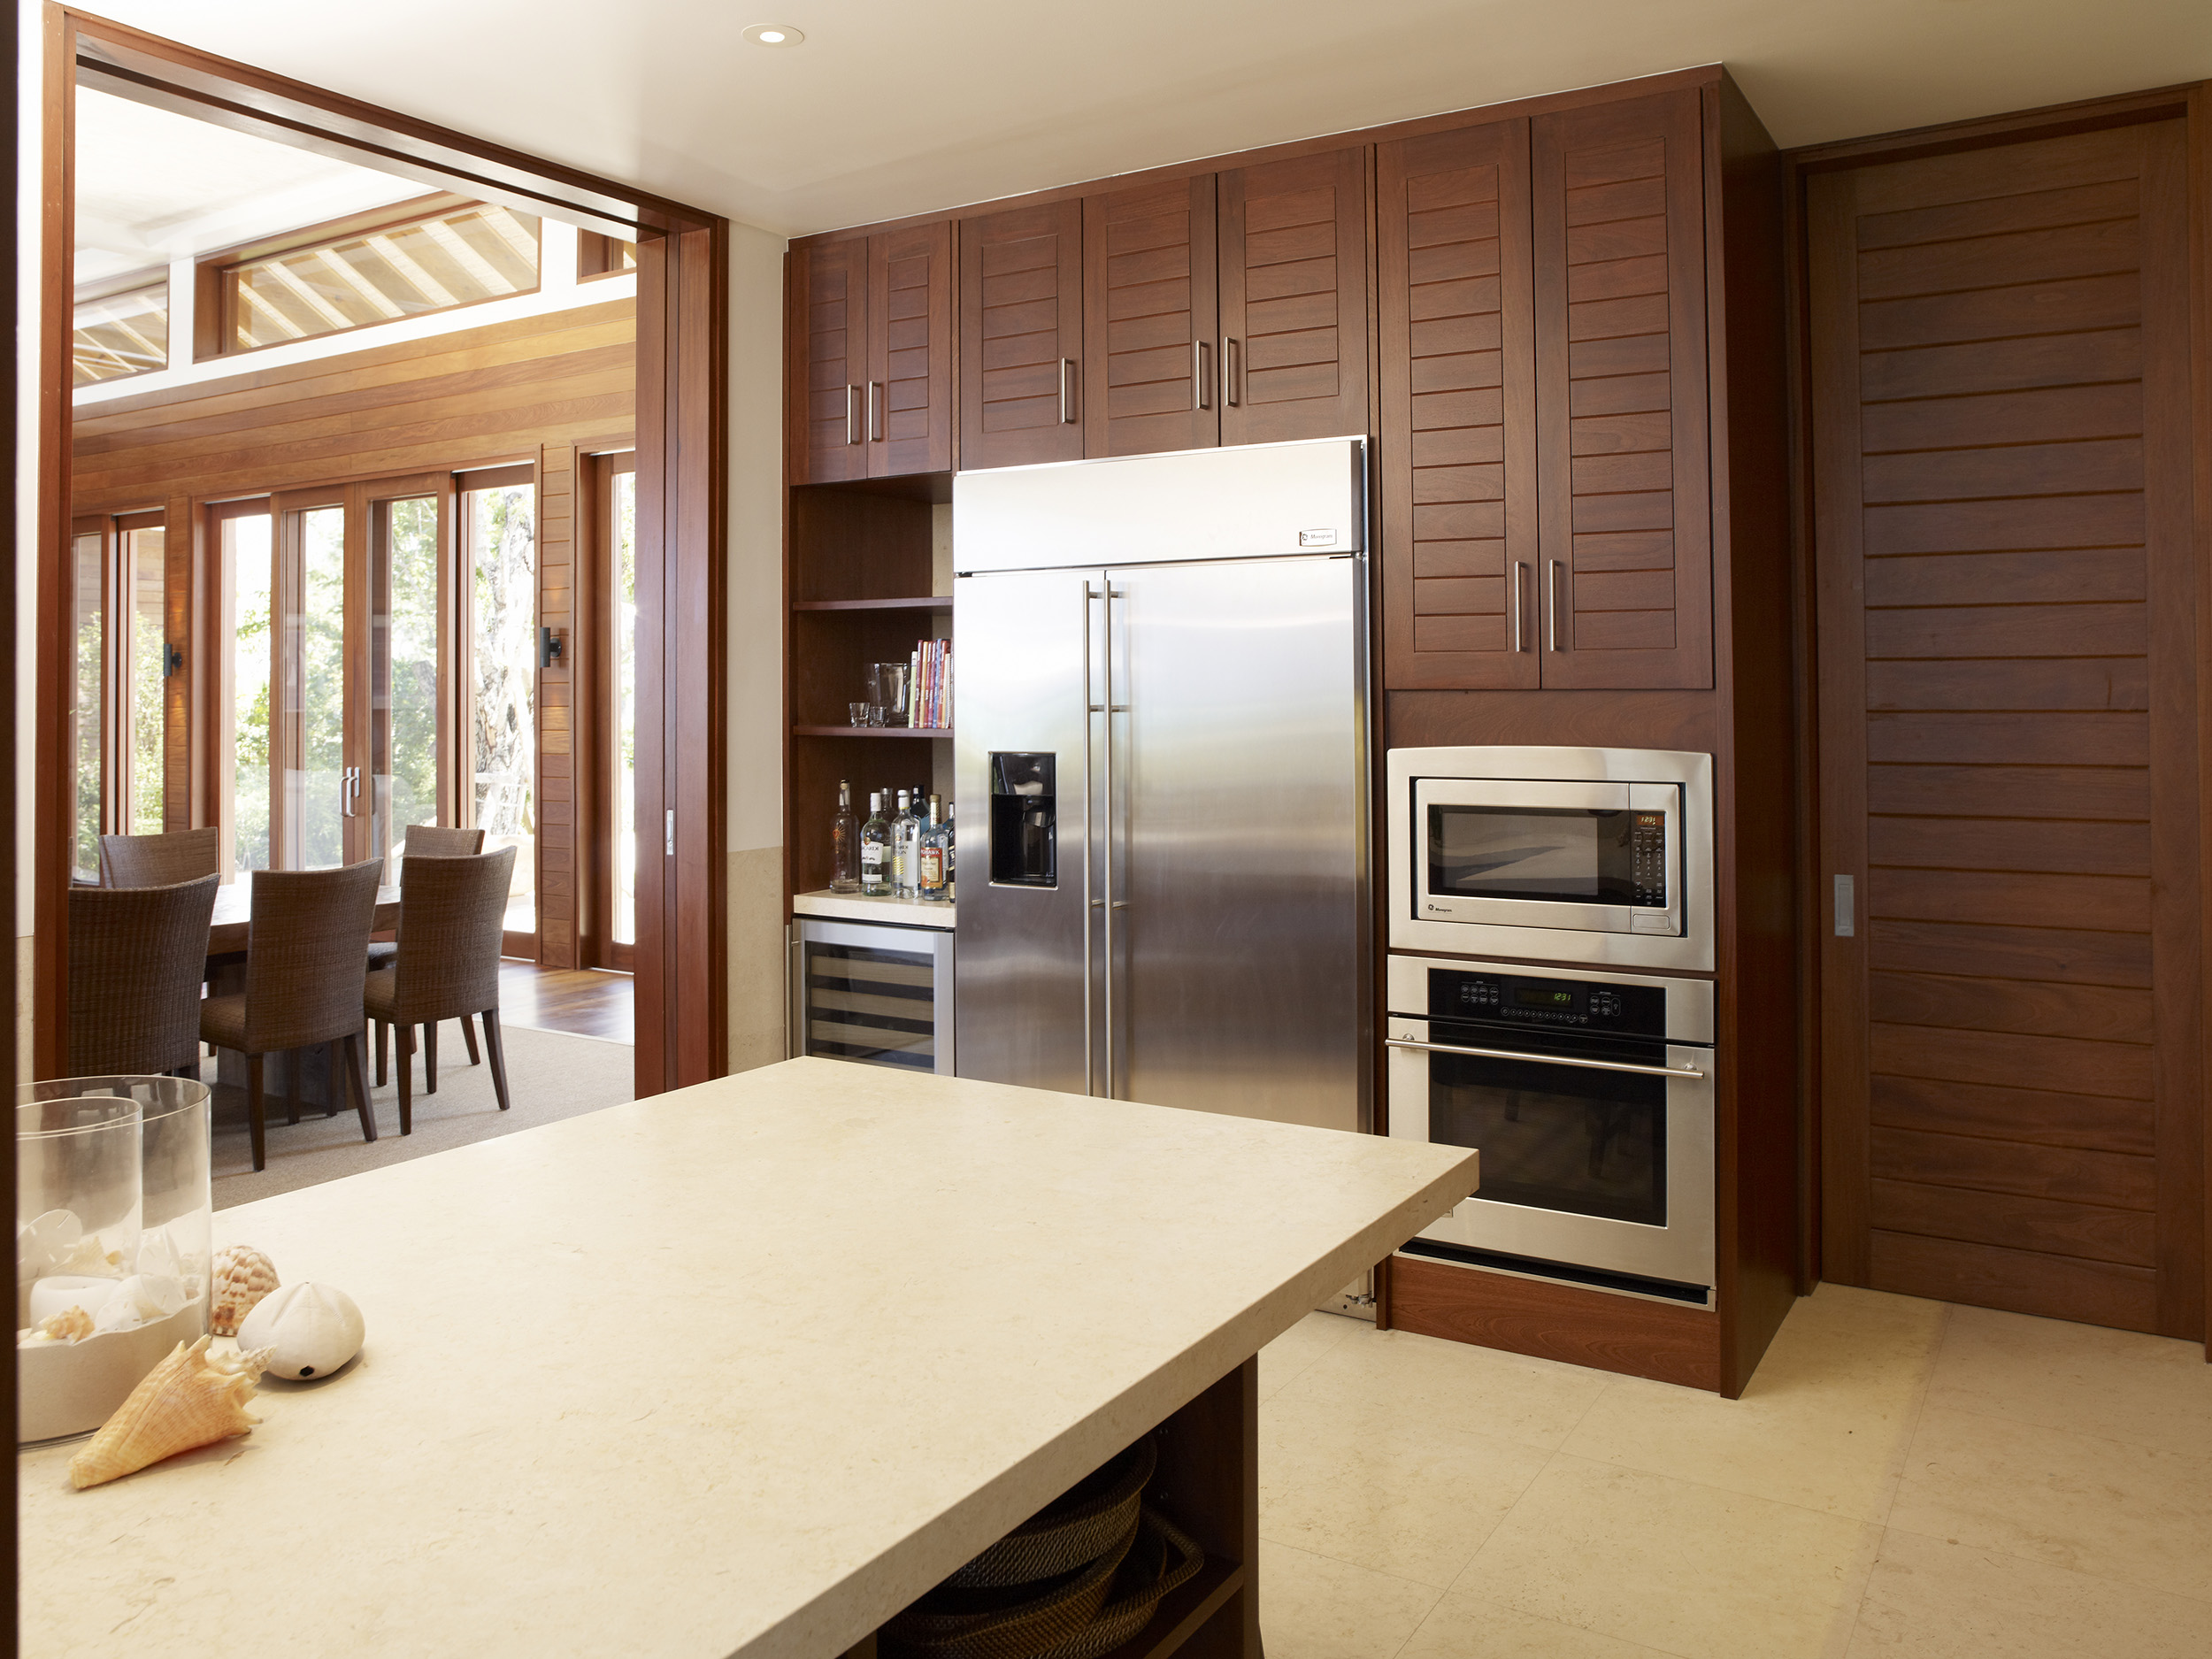 Tamarind - view of the kitchen cabinetry